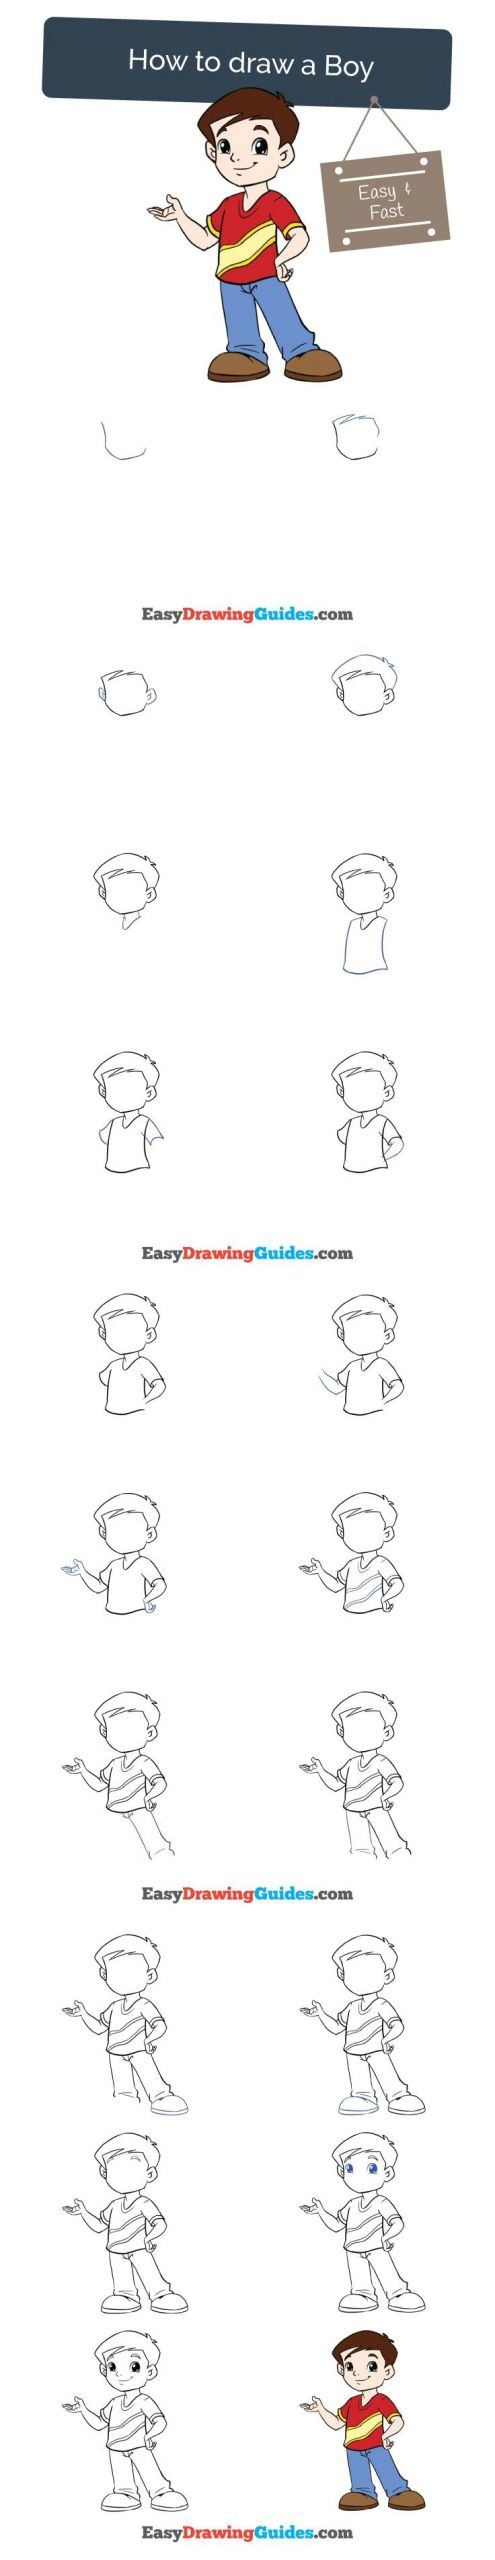 How to Draw A Person Cartoon Easy How to Draw A Boy Drawing Tutorials for Kids Easy